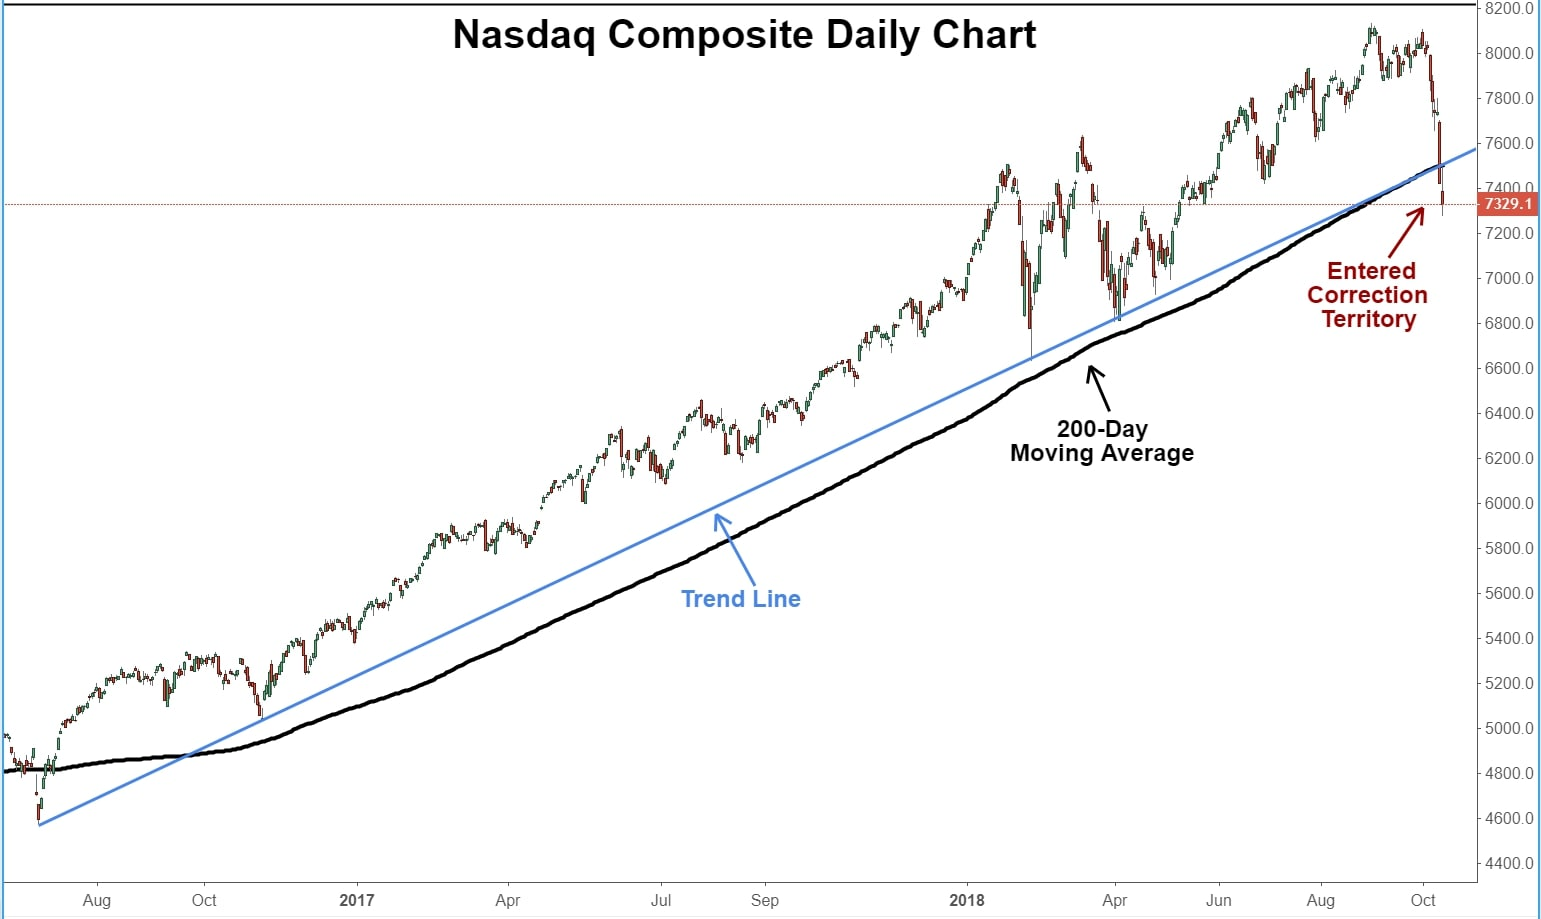 Daily technical chart showing the performance of the Nasdaq Composite Index